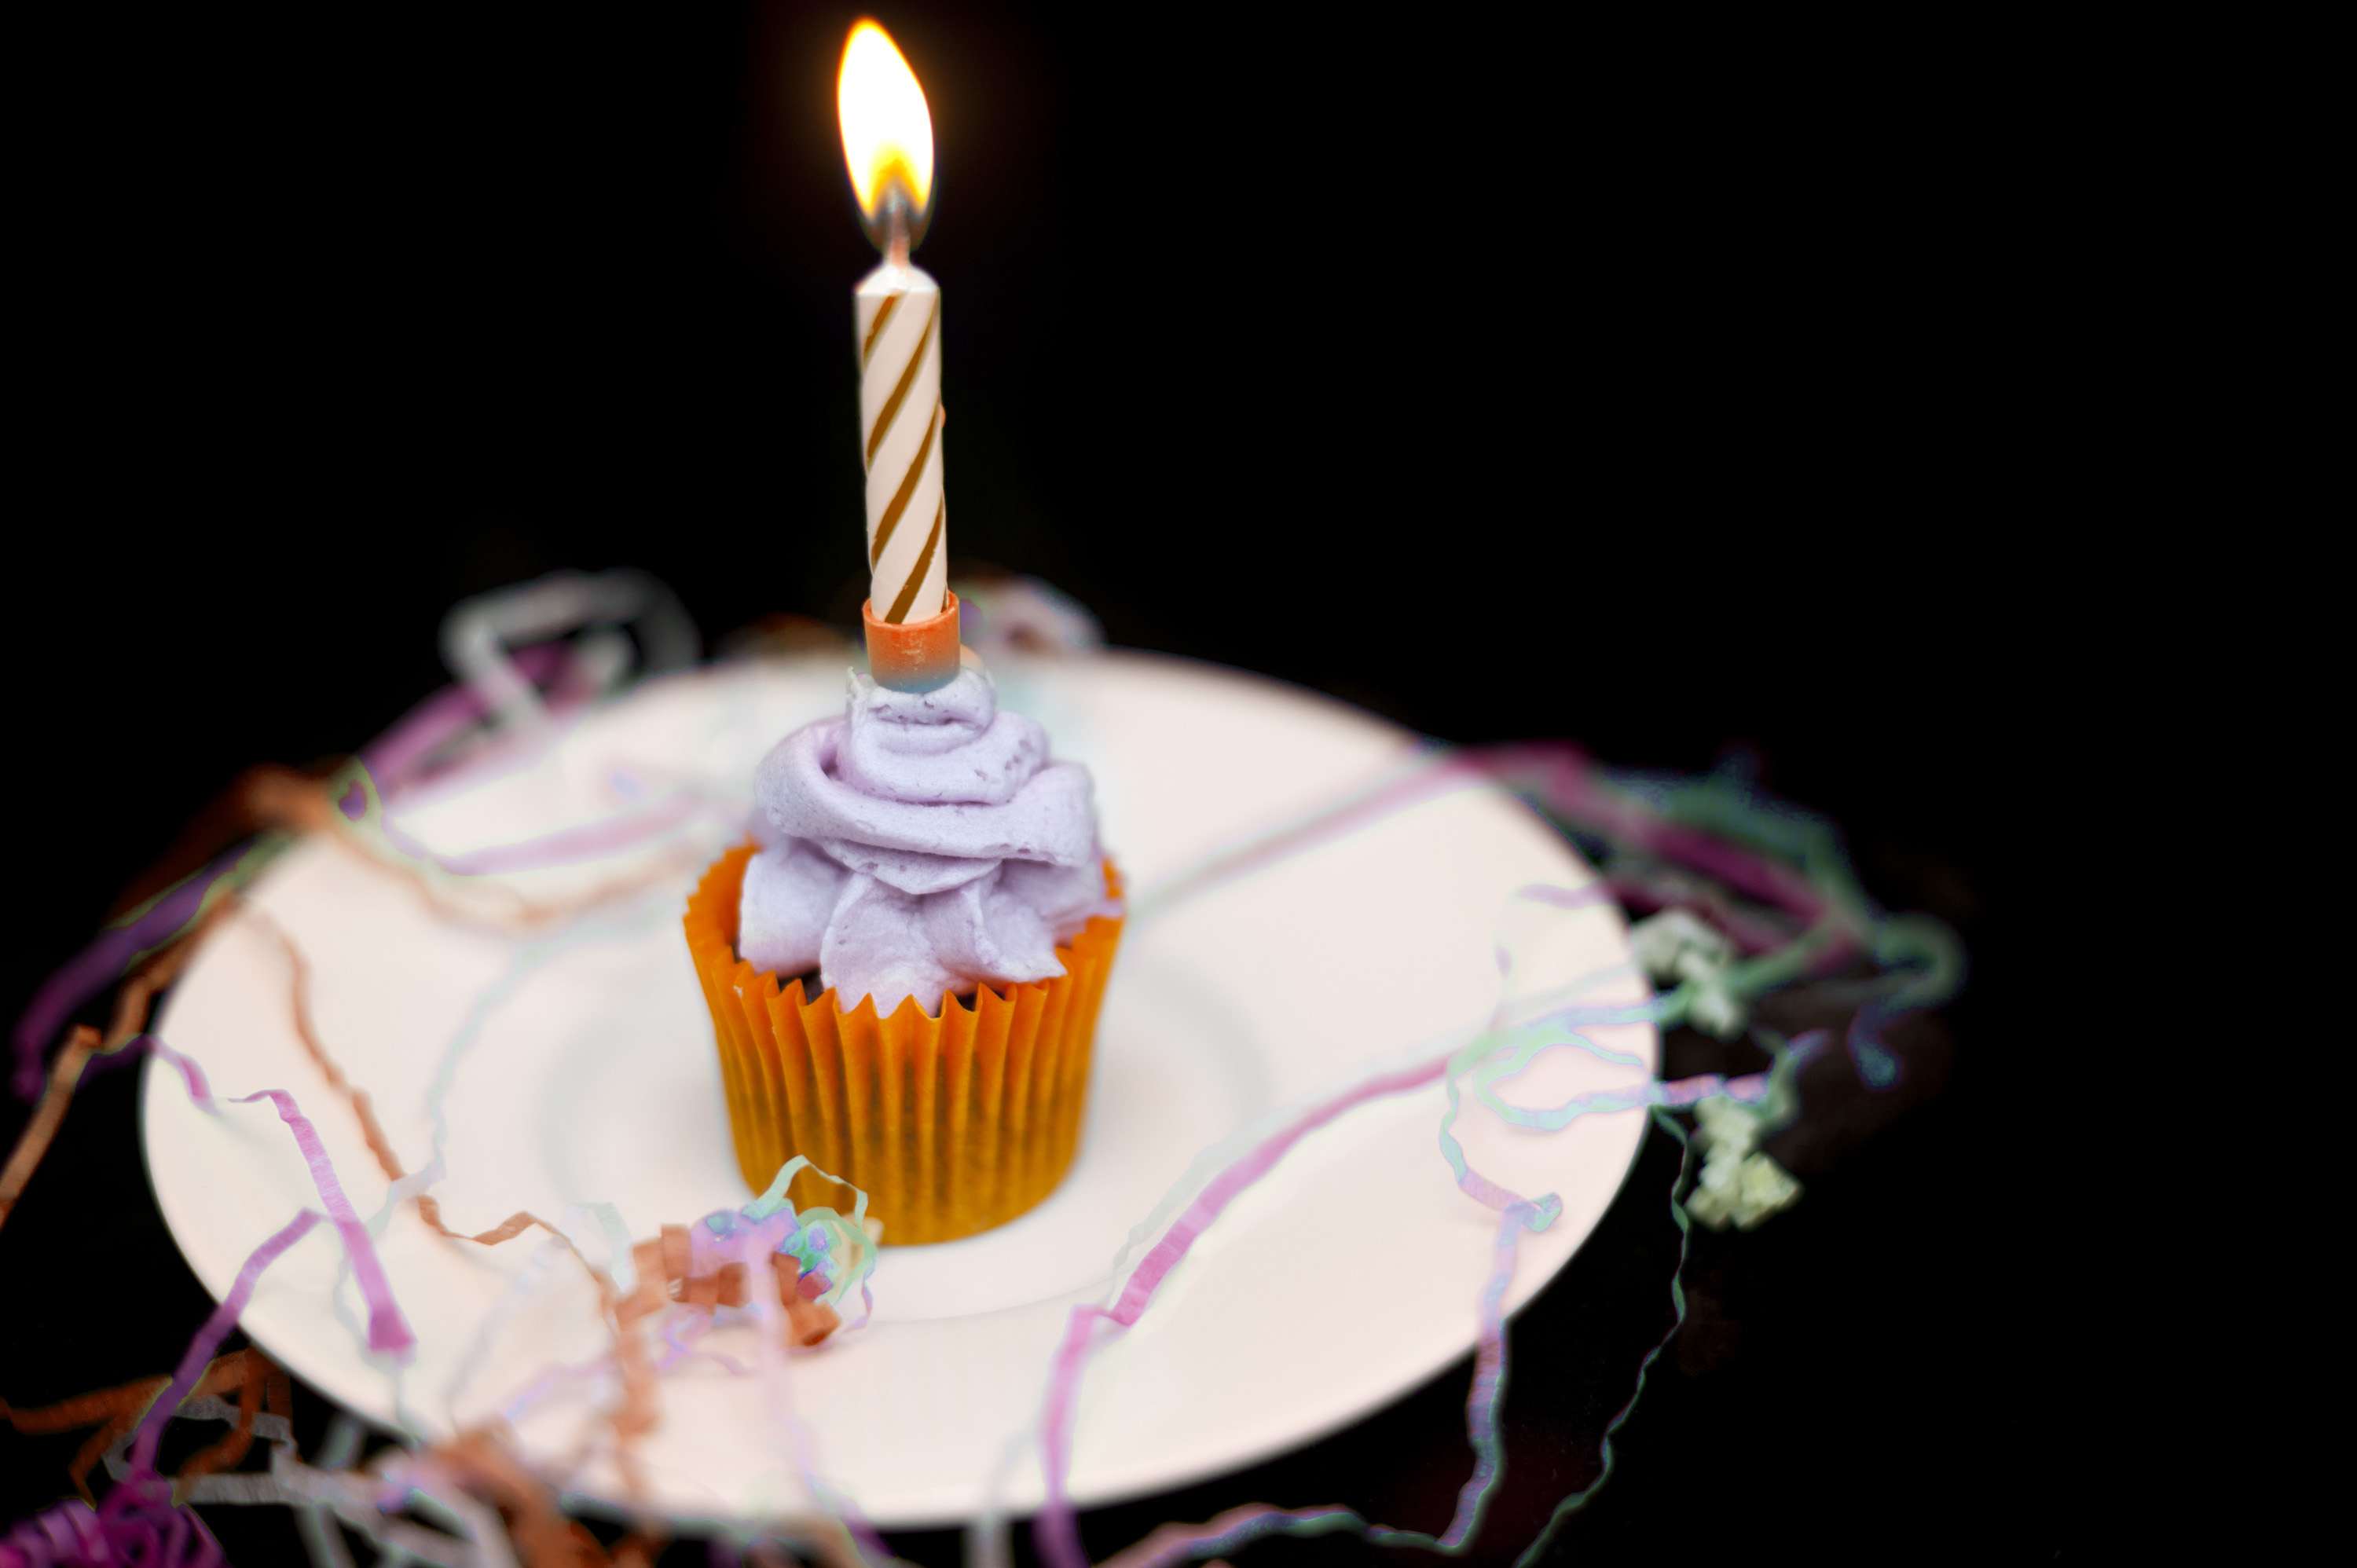 free stock photo 6481 party for one | freeimageslive